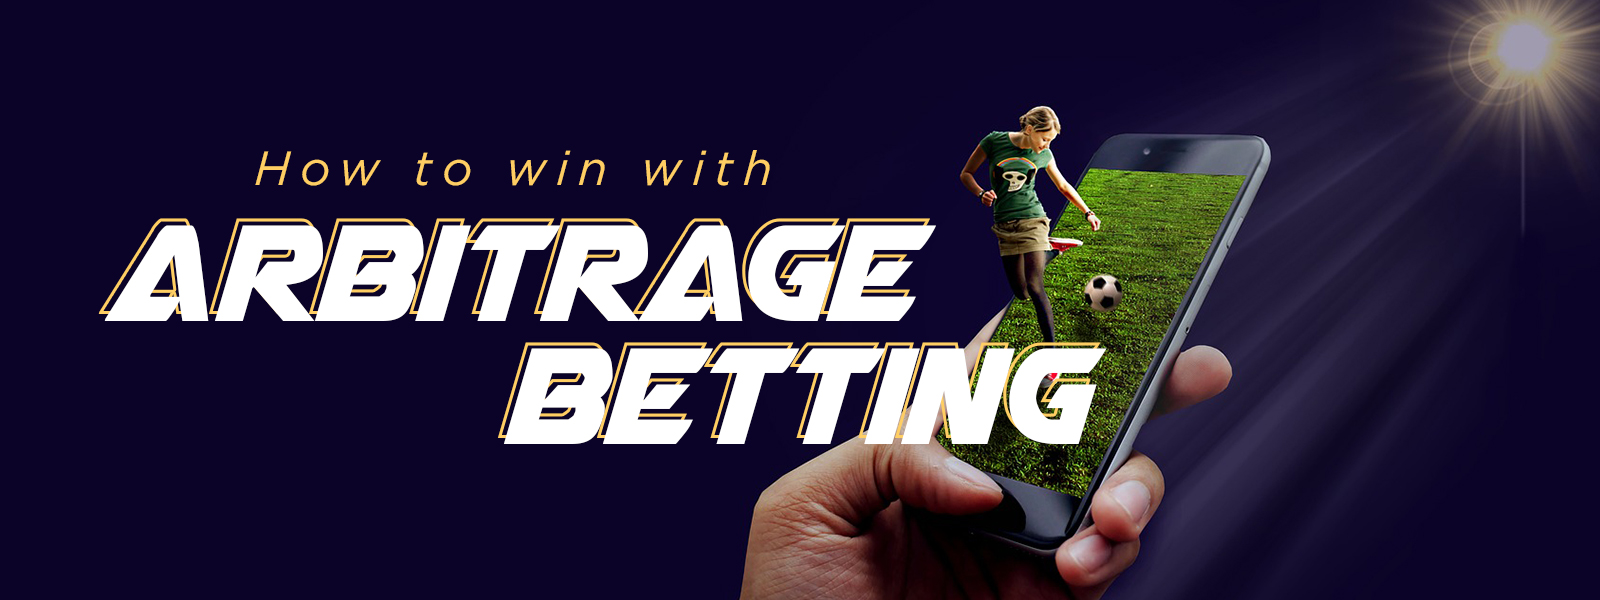 Learn How To Win With Arbitrage Betting